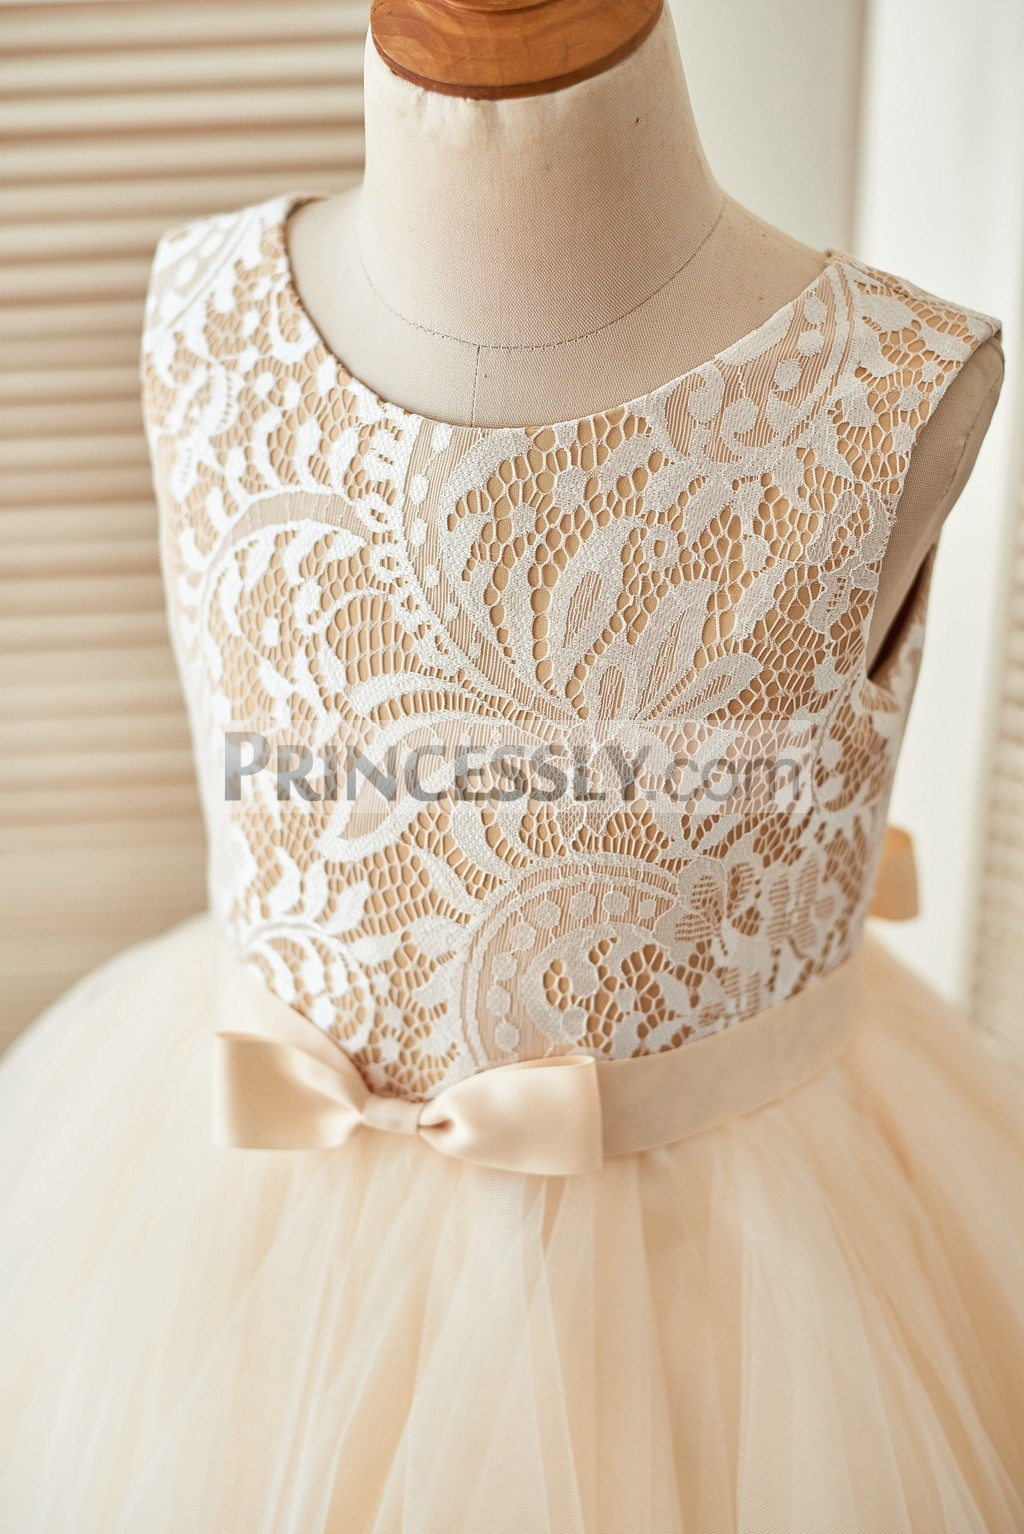 Ivory lace bodice in scoop neckline and sleeveless with satin belt and bow